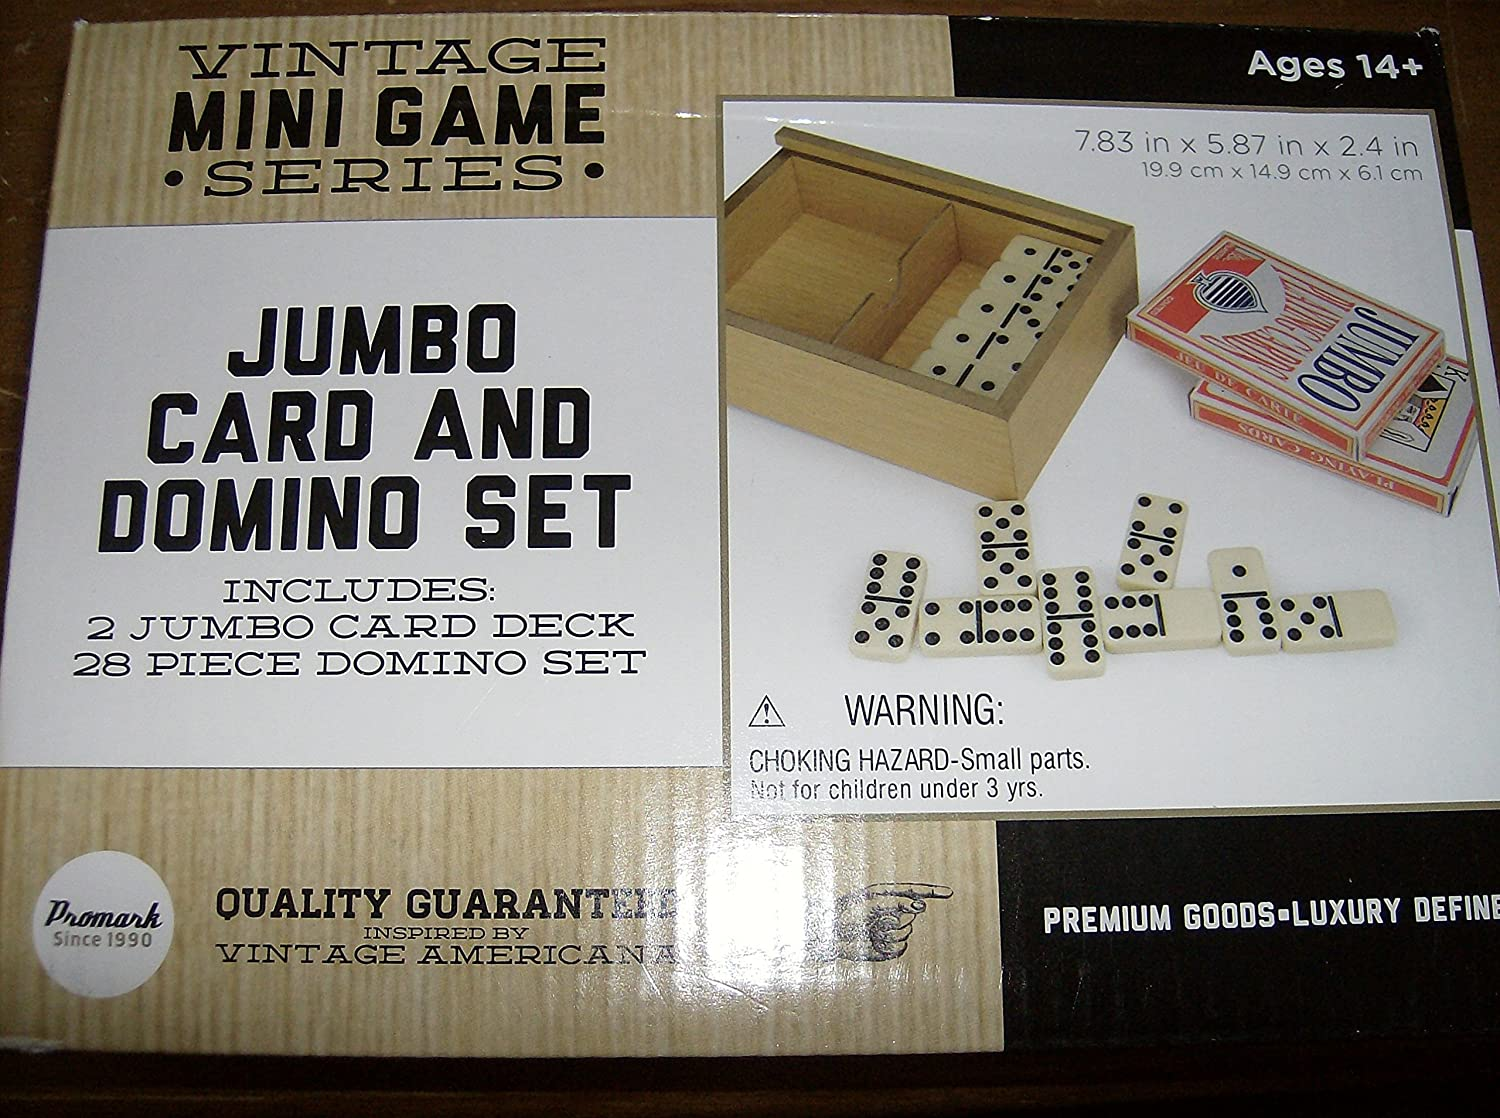 Vintage Mini Game Series Jumbo Card and Domino Set by Vintage